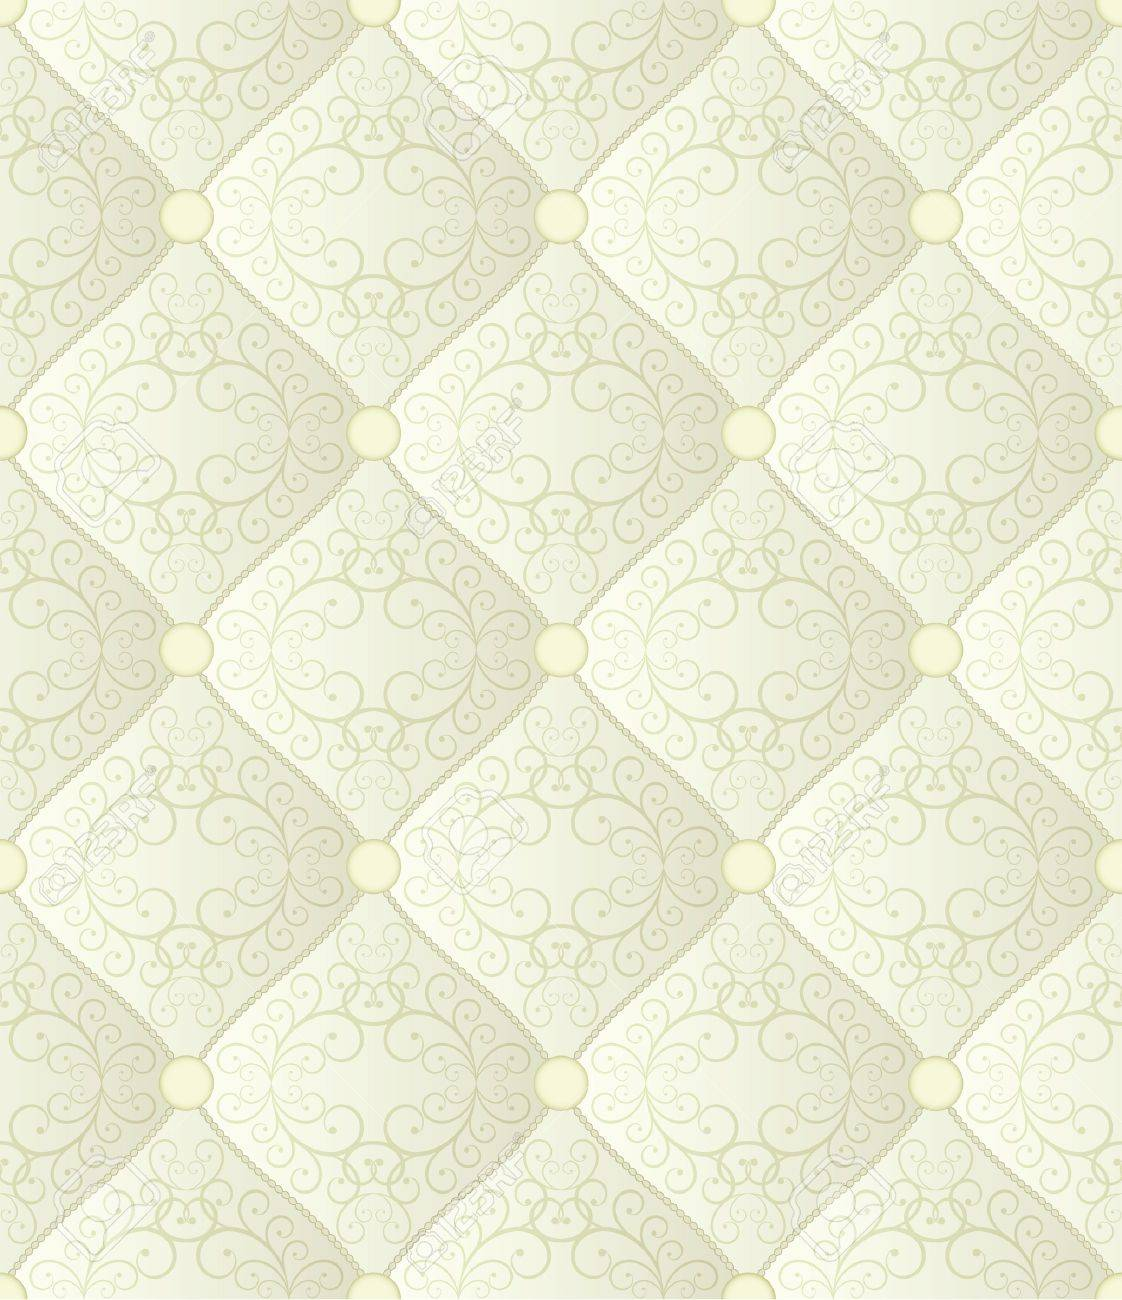 Quilted Fabric Creamy Seamless Background Quilted Fabric